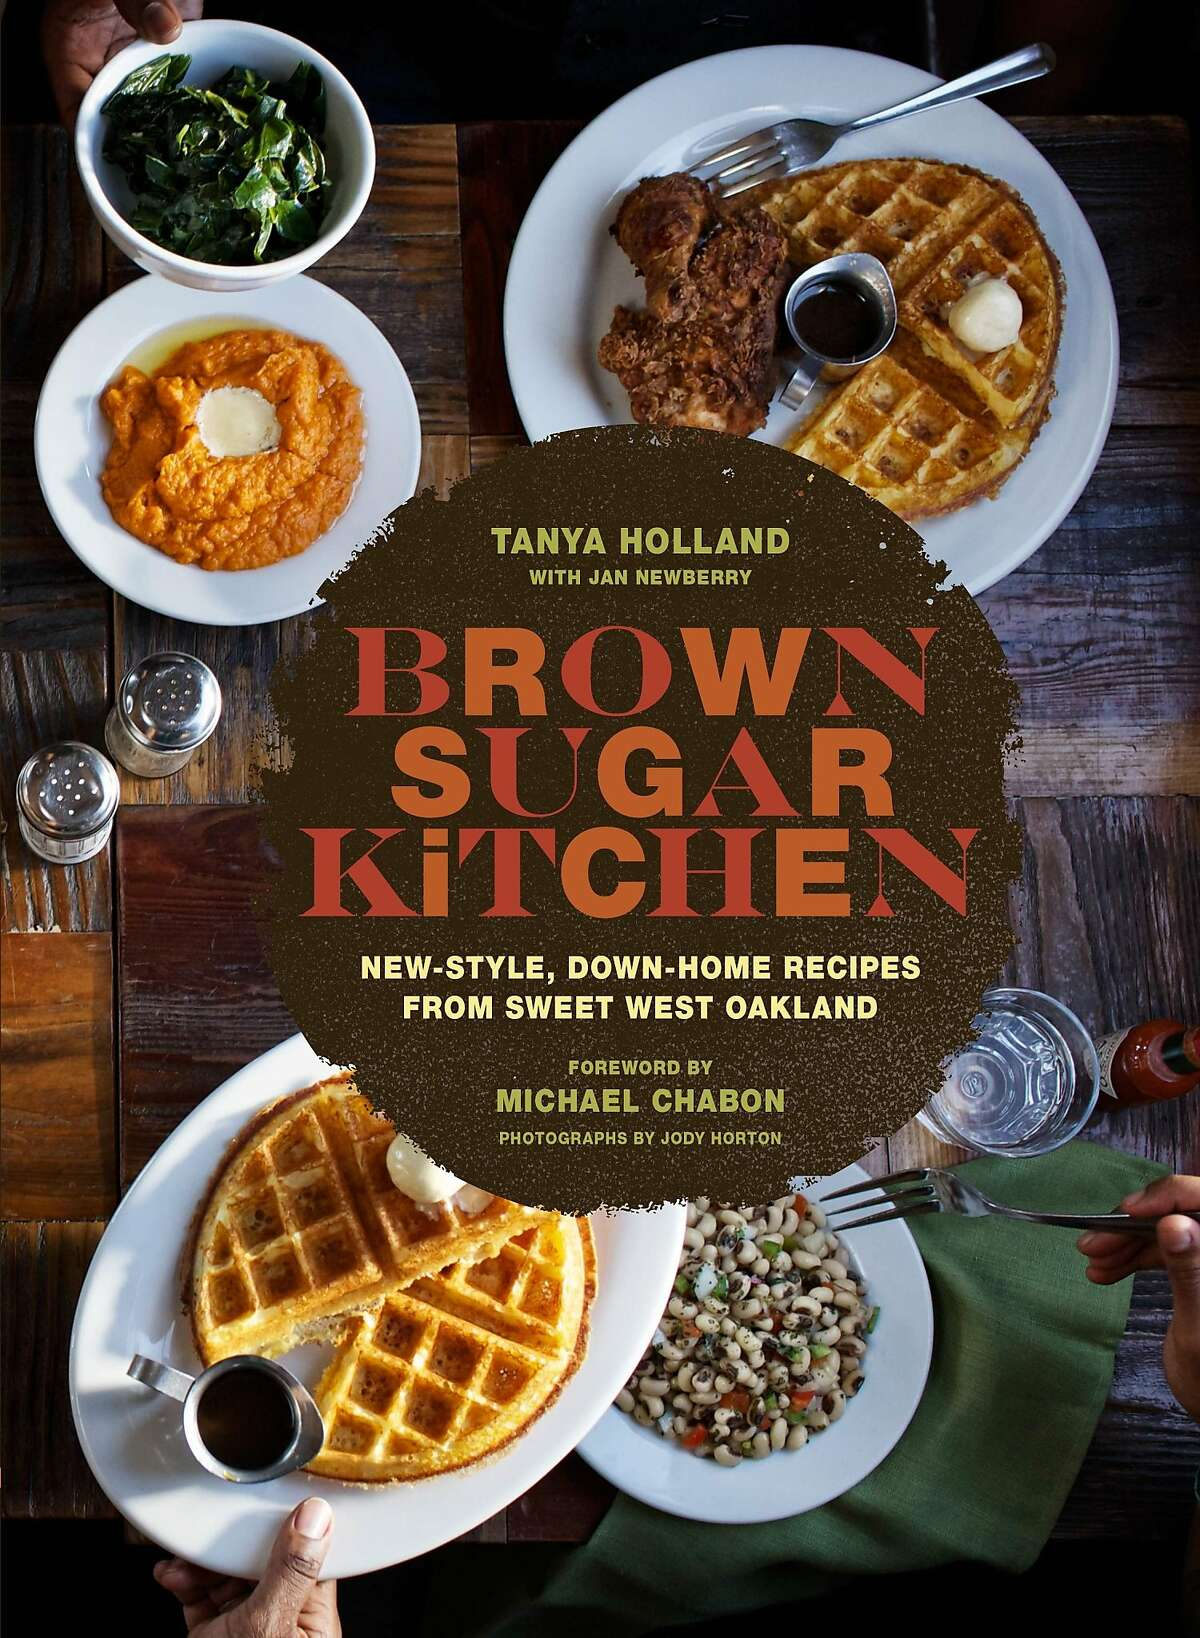 Brown Sugar Kitchen chef Tanya Holland's second book, based on stories and recipes from her award-winning restaurant, comes out Sept. 9, 2014.